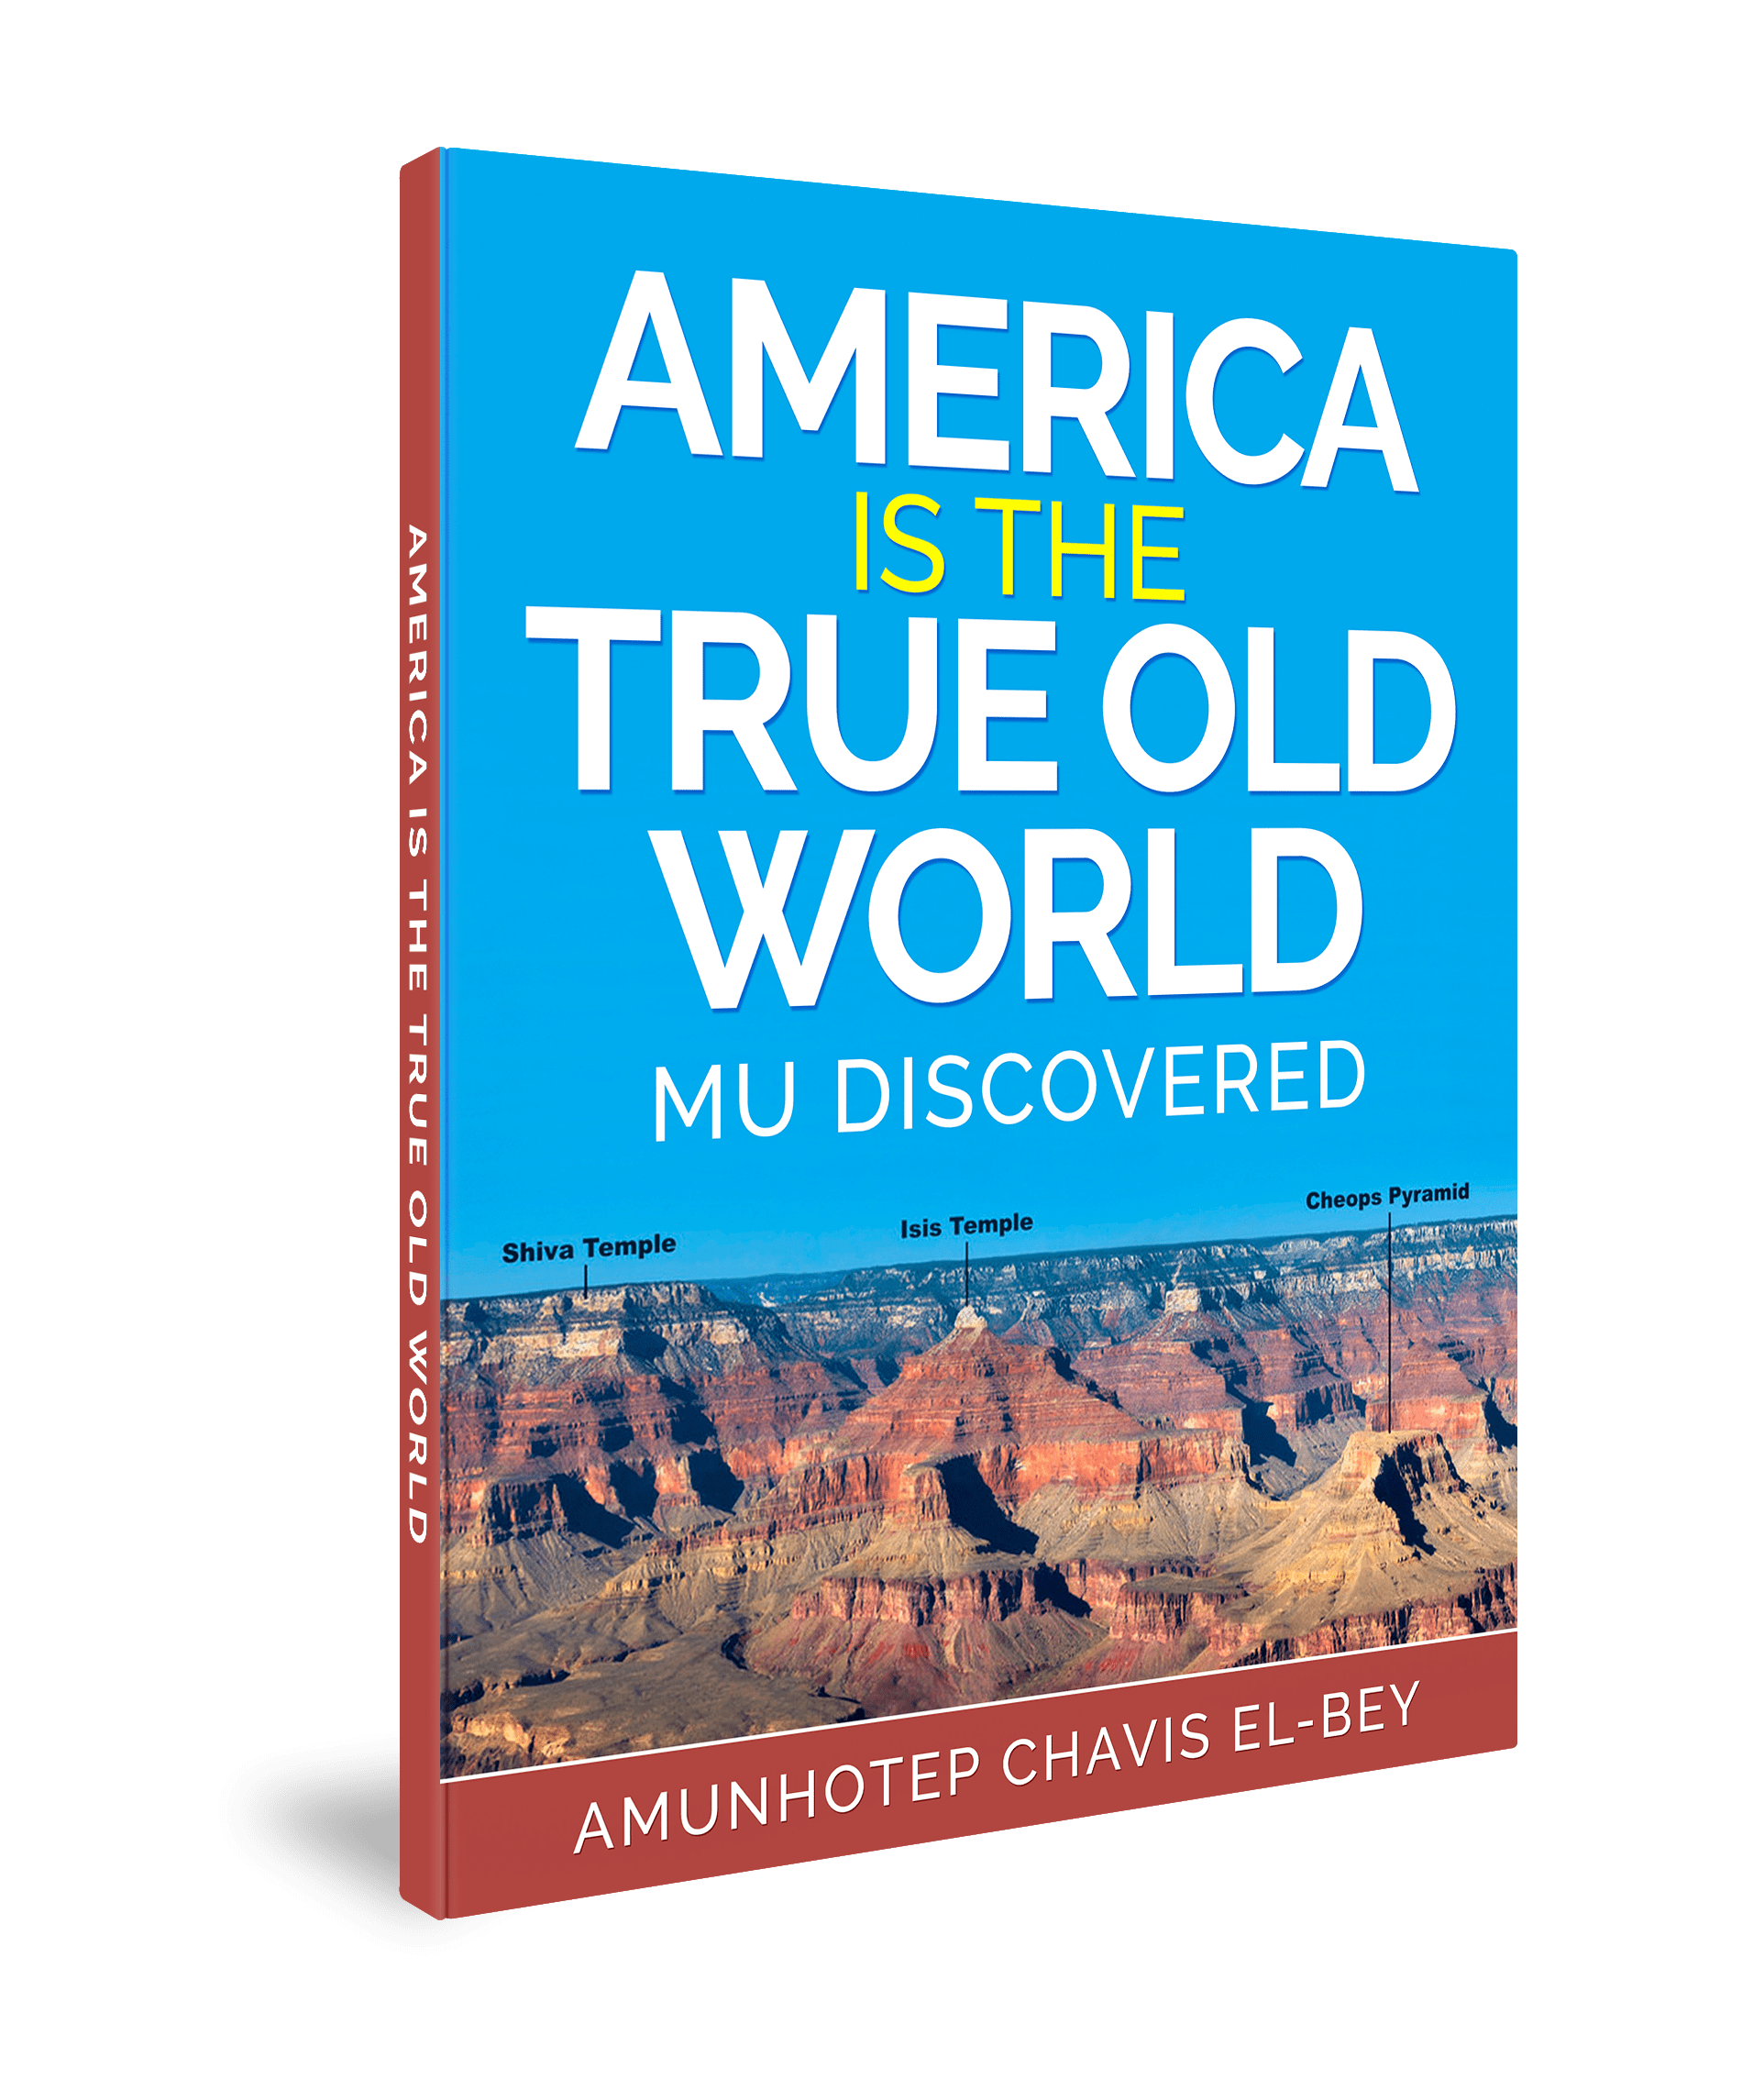 America is the True Old World - Paperback